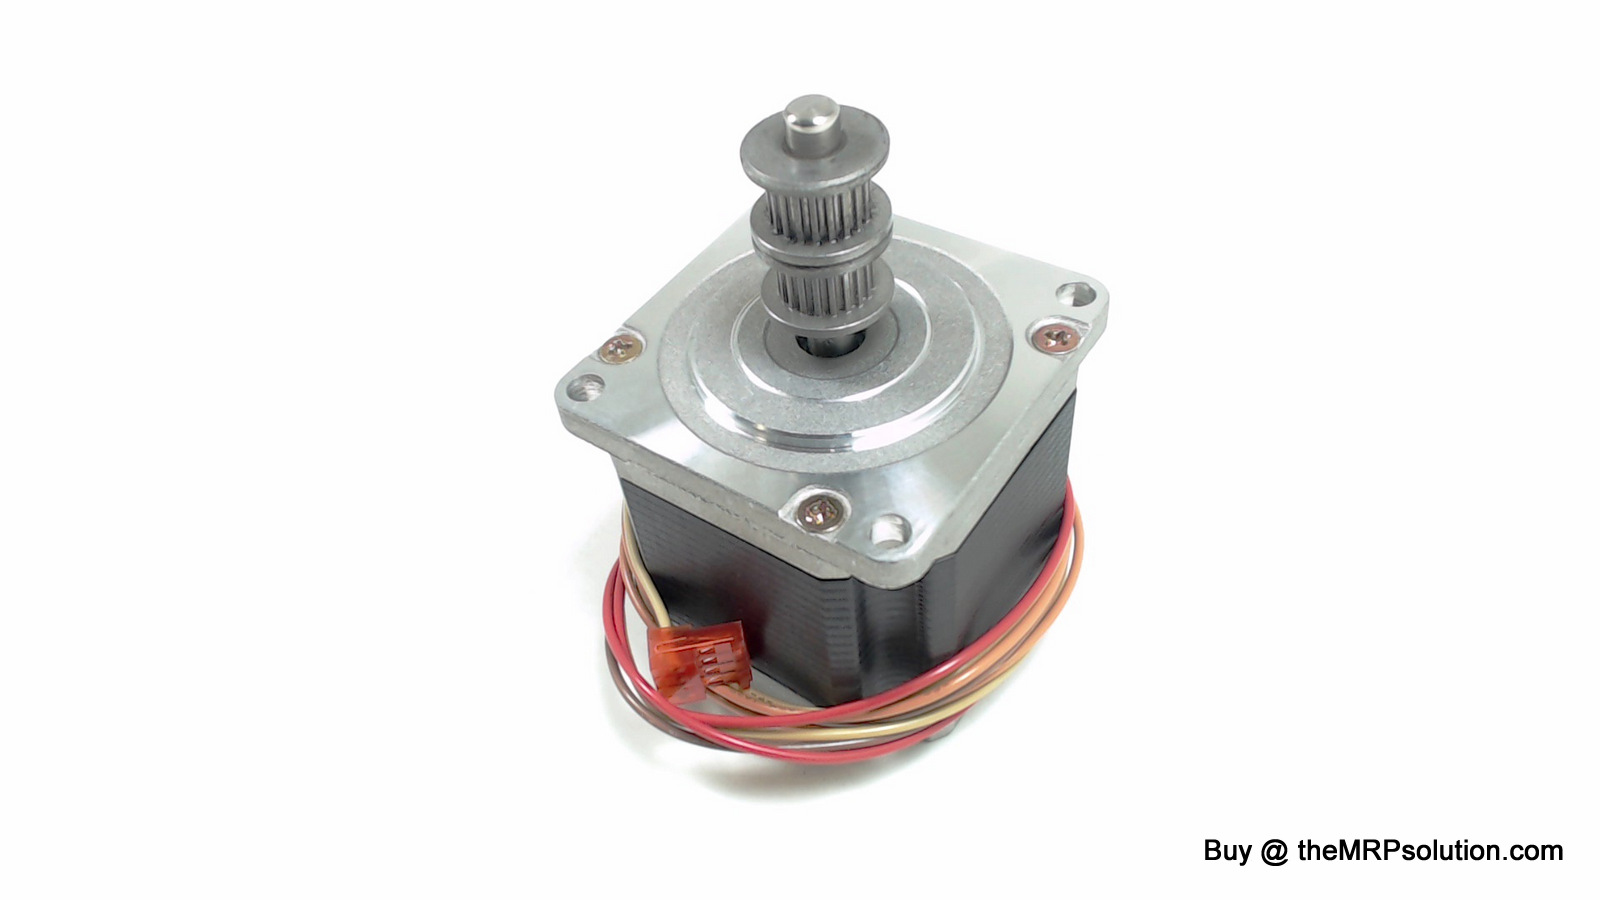 ZEBRA 46197 STEPPER MOTOR New